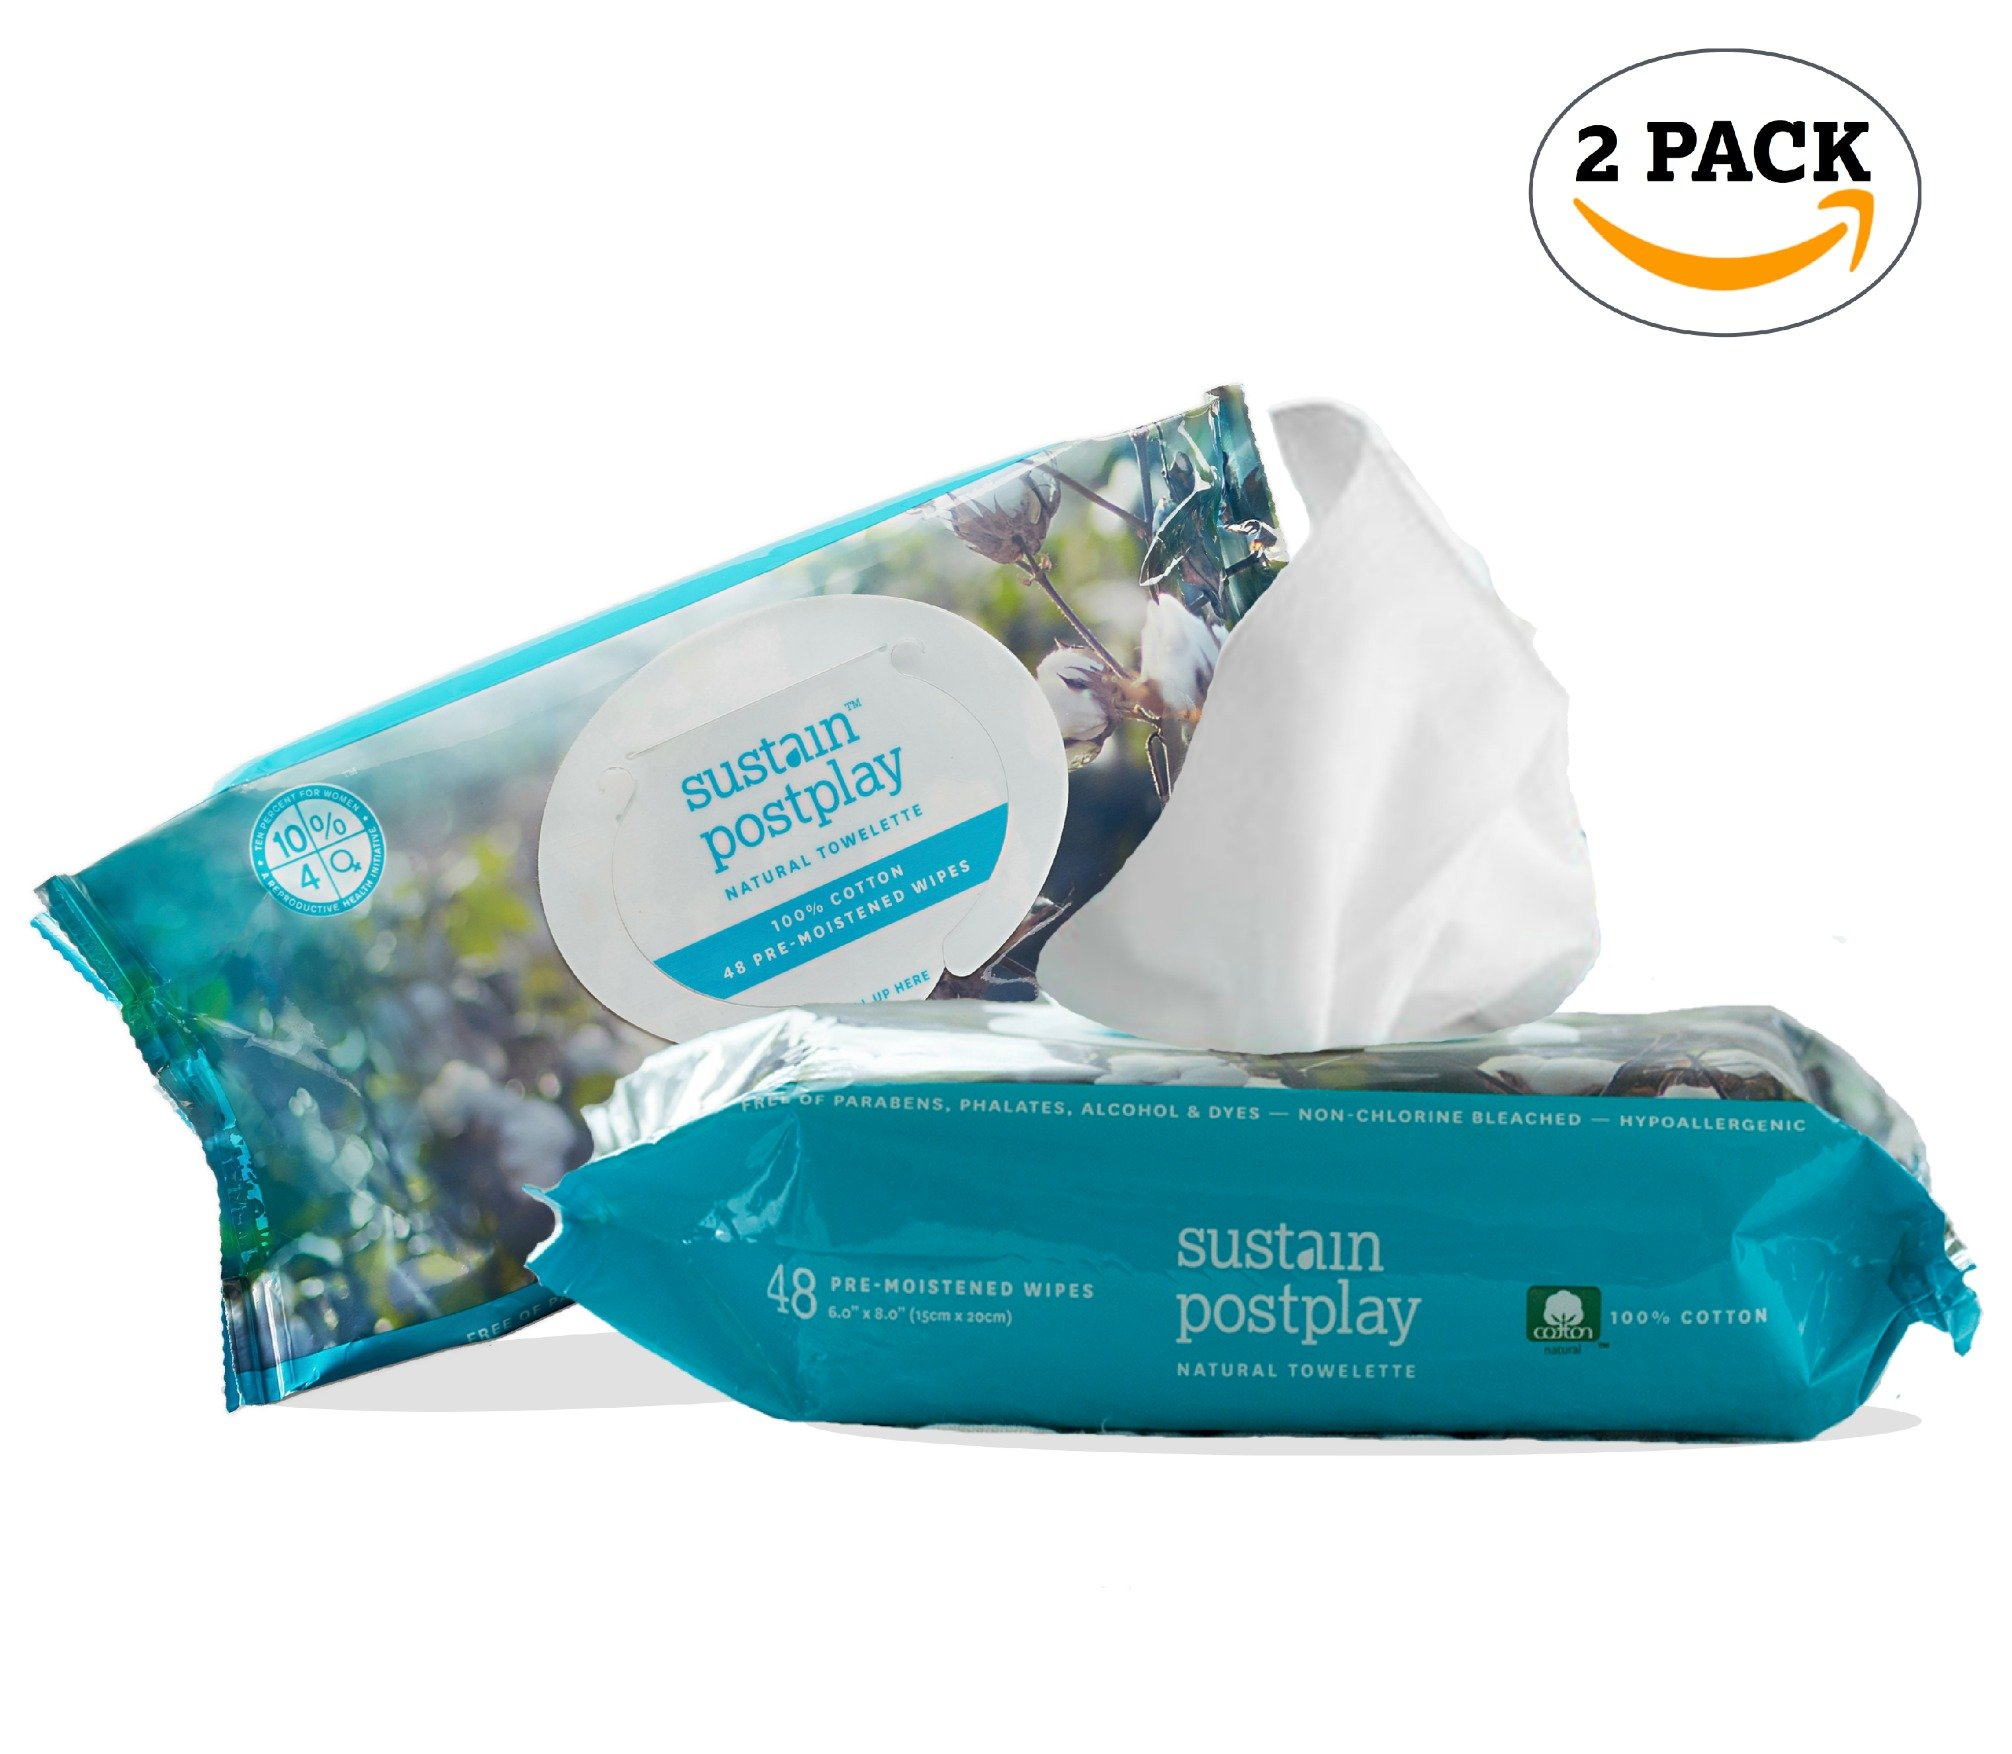 Sustain 2-Pack, (48 count ea.) Pre & Post Play All Natural Wipes with Organic Ingredients. Non-Toxic, 100% Cotton, Feminine Wipes. Moist personal wipes for hygiene, after gym and intimate experience.